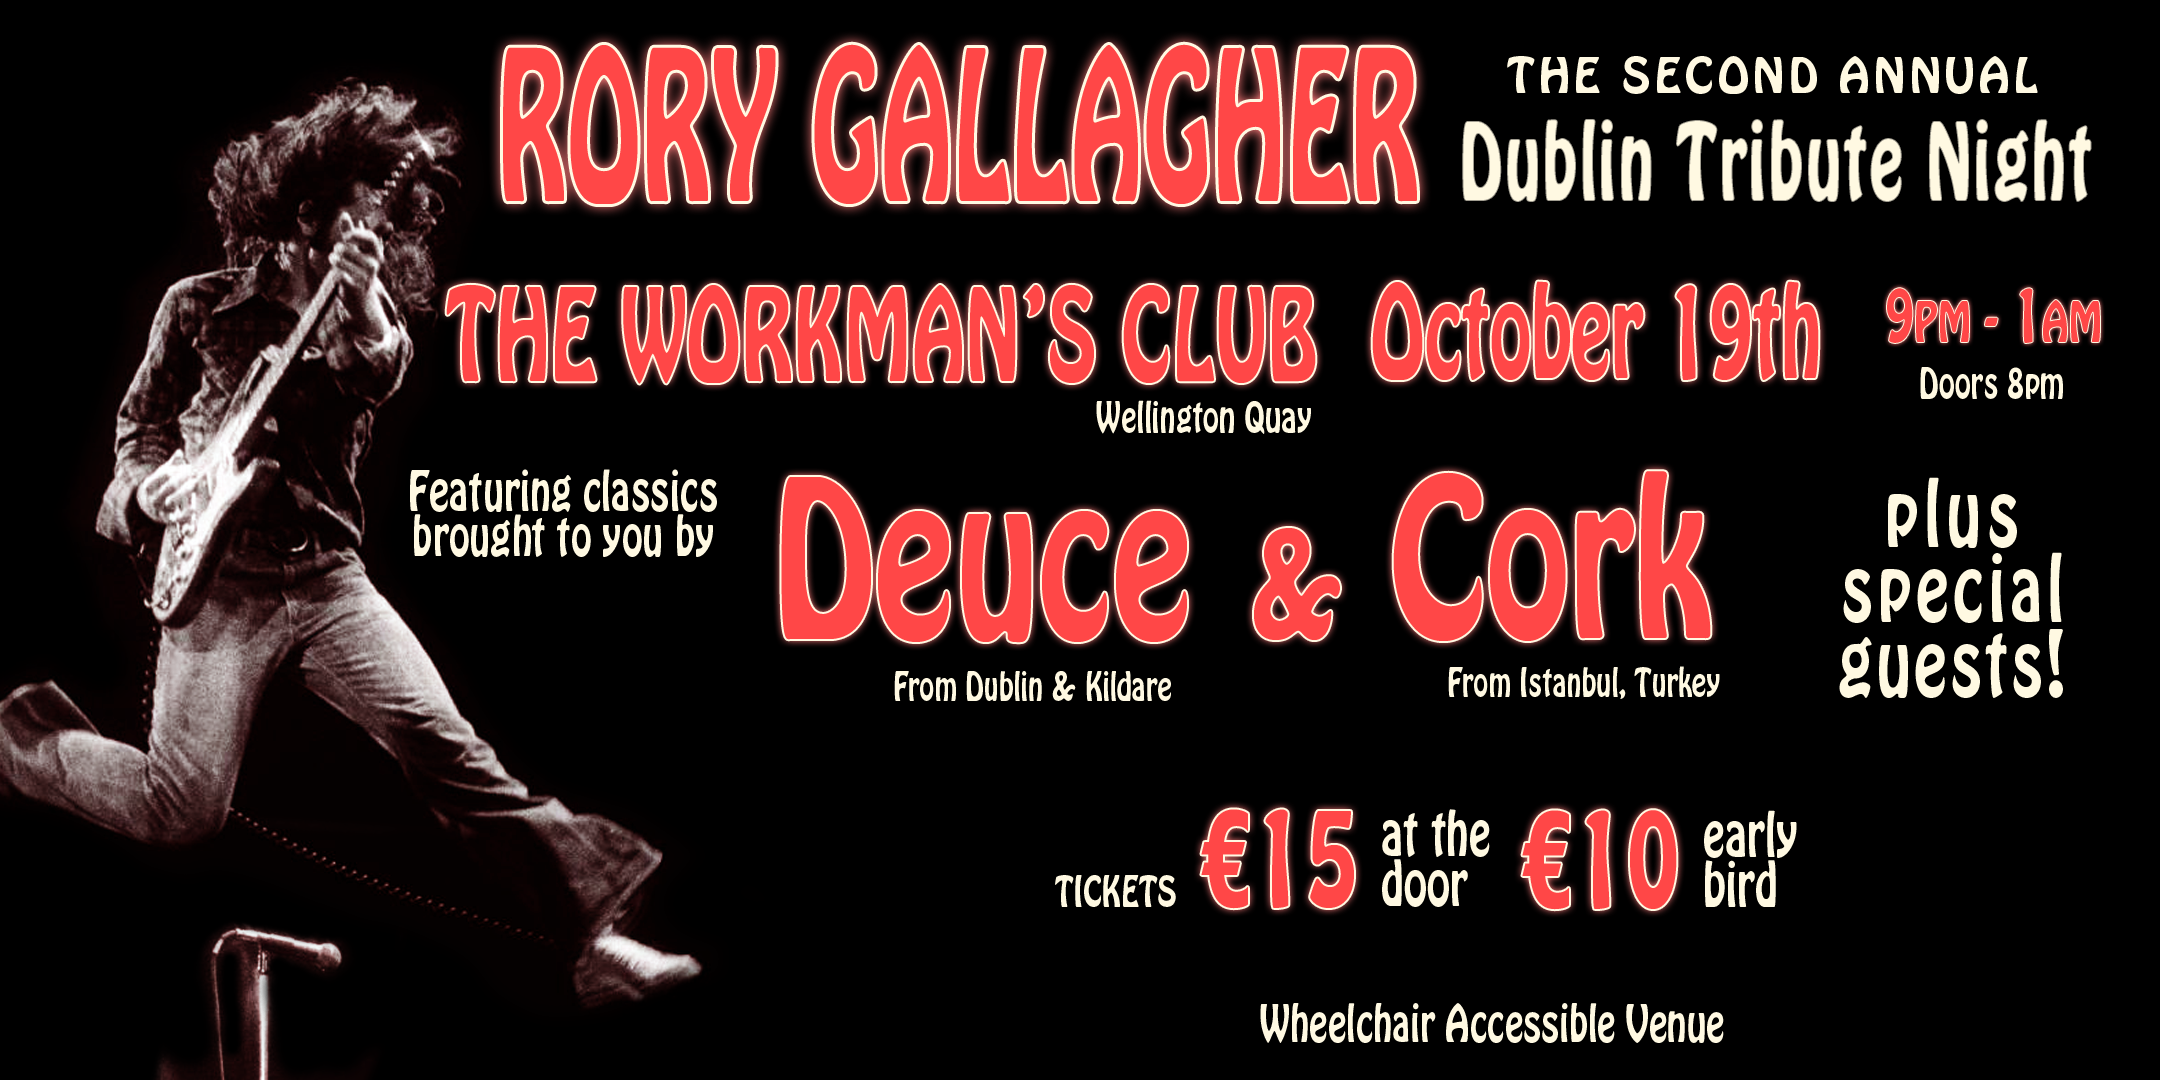 Rory Gallagher Dublin Tribute Night